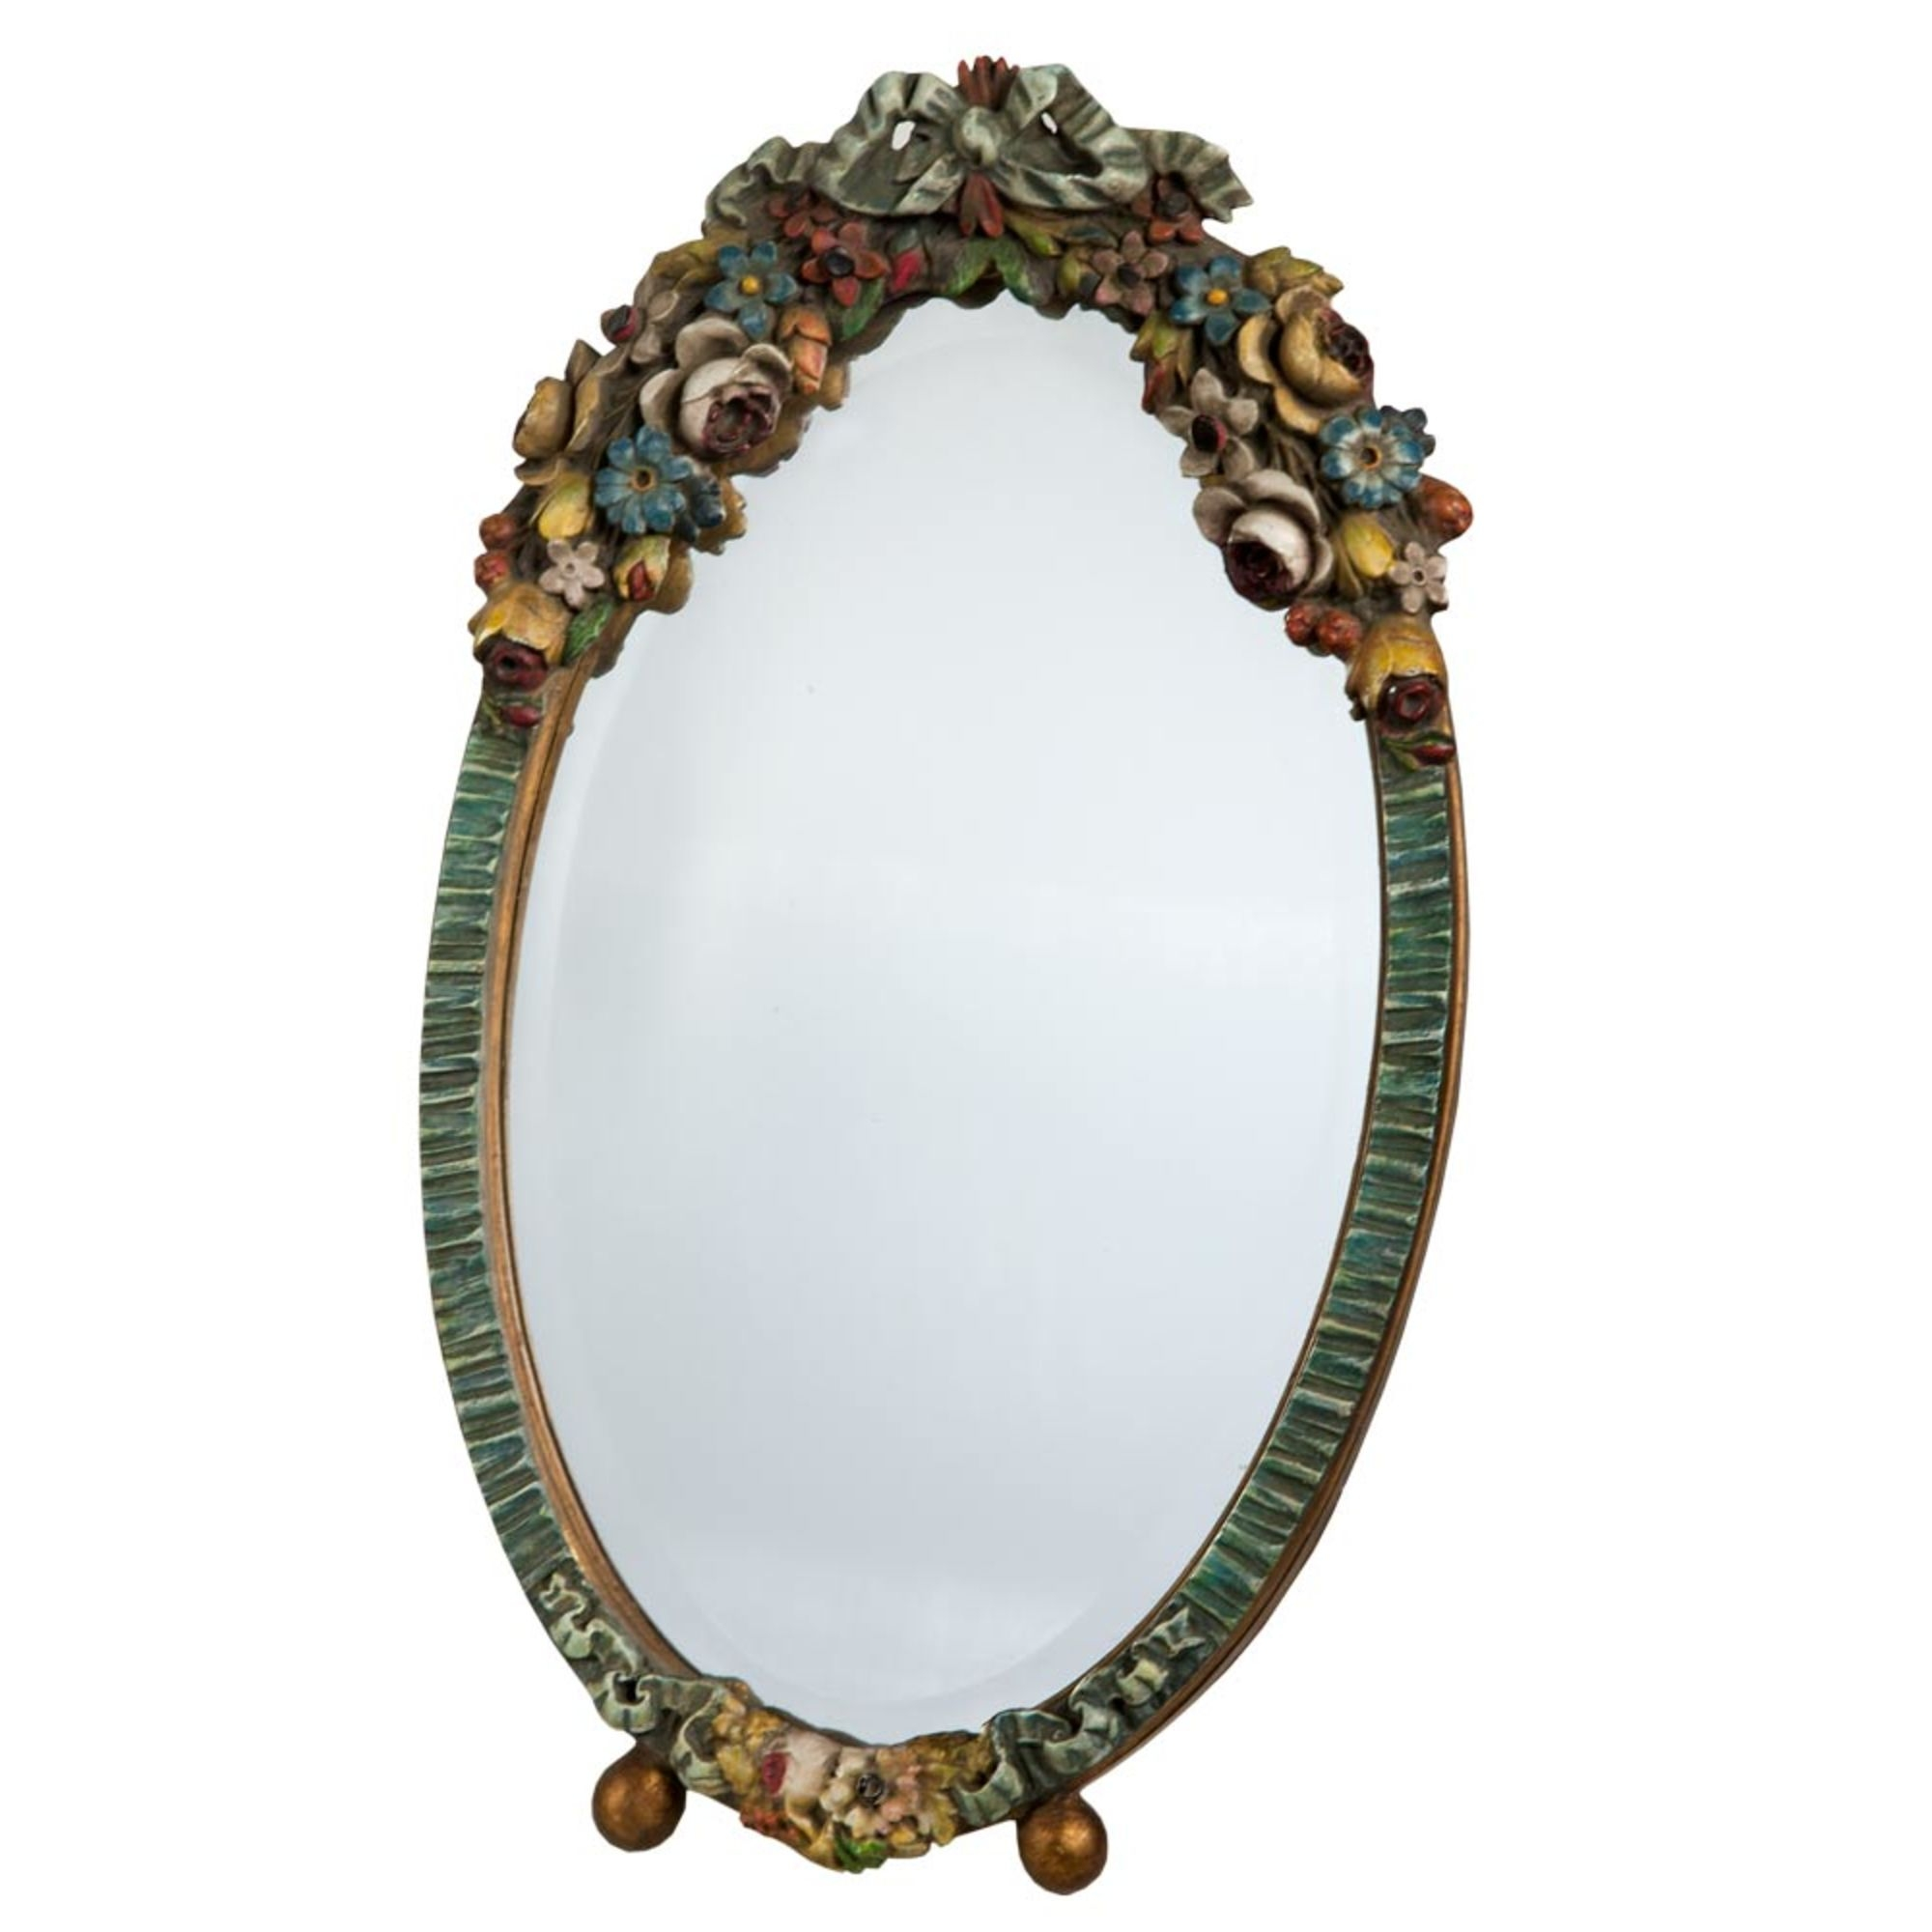 Barbola Floral Multicolour Oval Bevelled Decorative Table or Wall Mirror